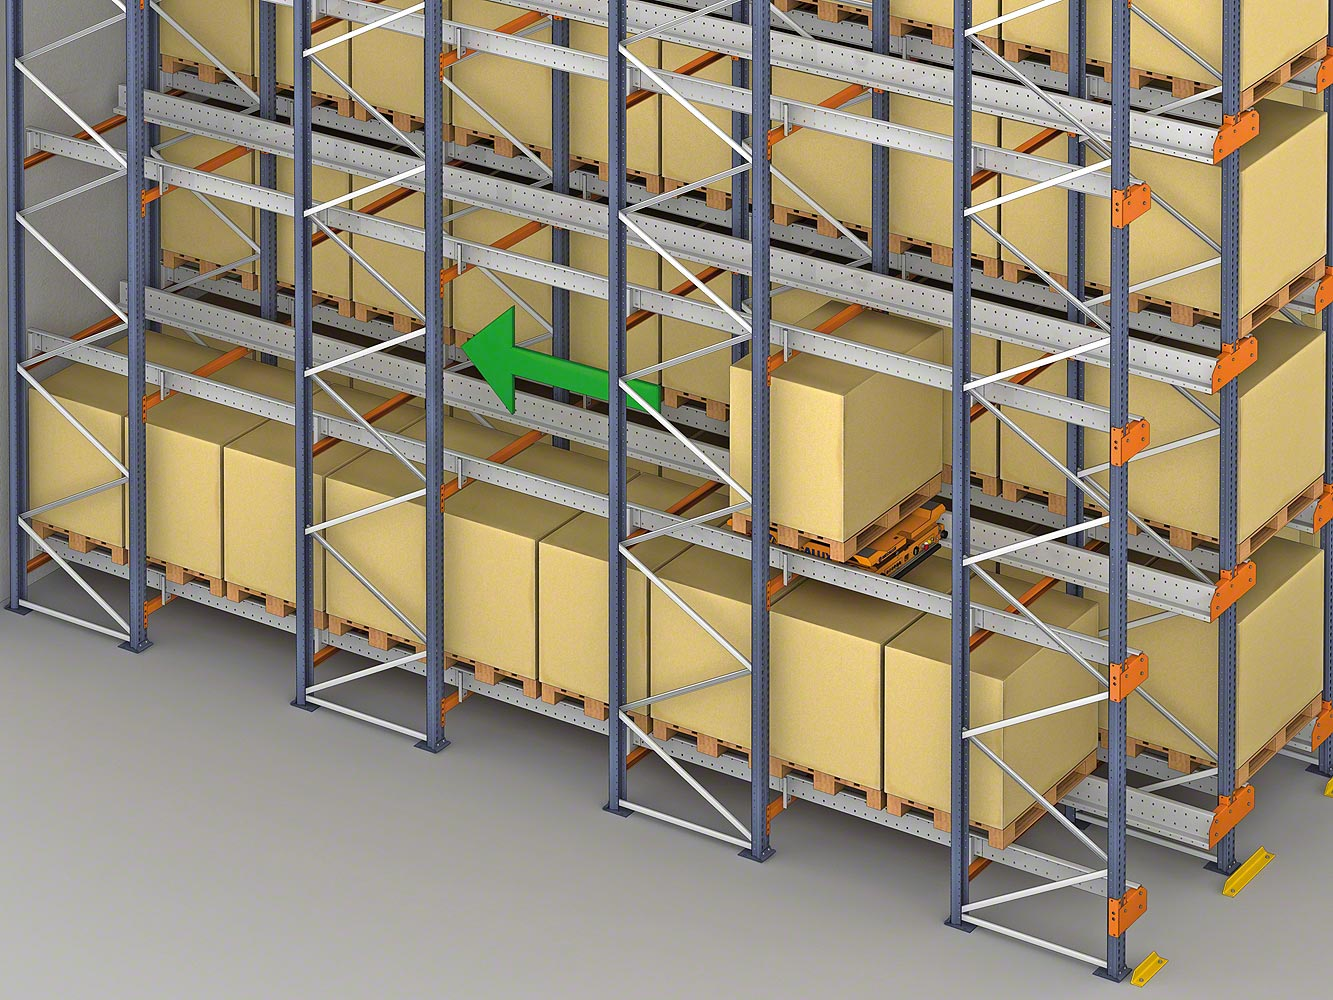 Pallet Shuttle slides the pallets horizontally to the nearest available space